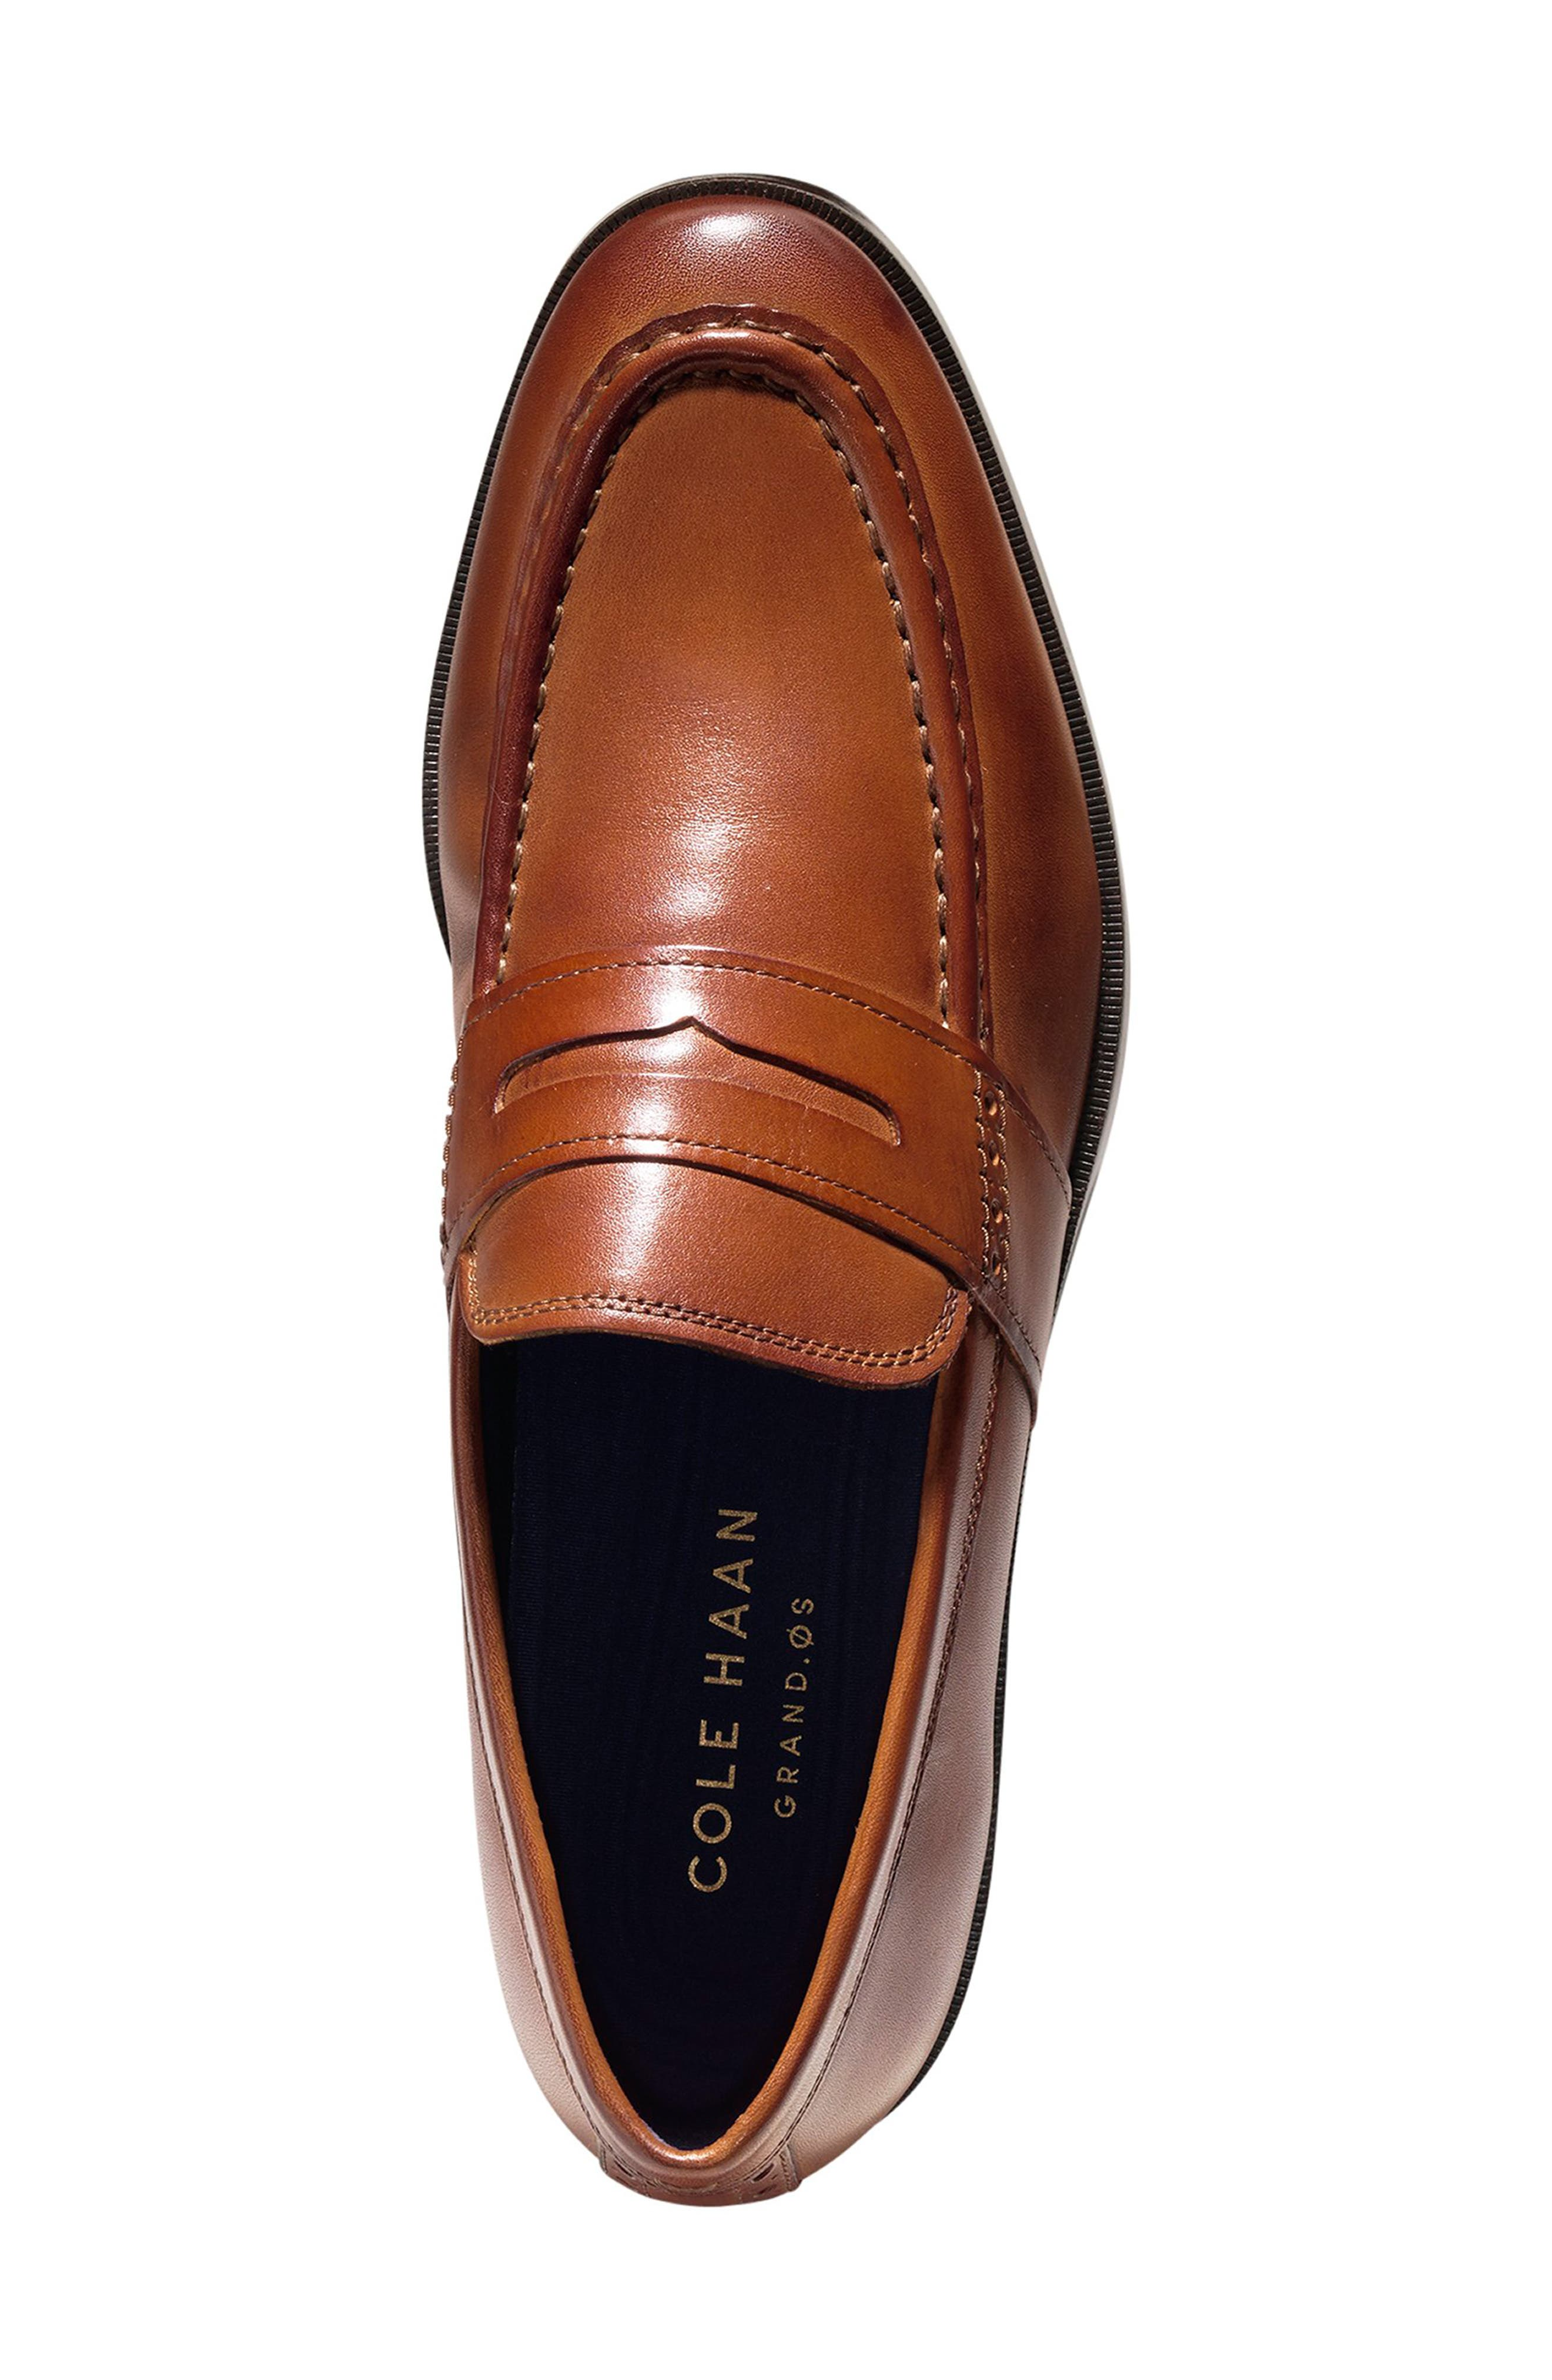 COLE HAAN, Jefferson Grand Penny Loafer, Alternate thumbnail 4, color, BRITISH TAN LEATHER